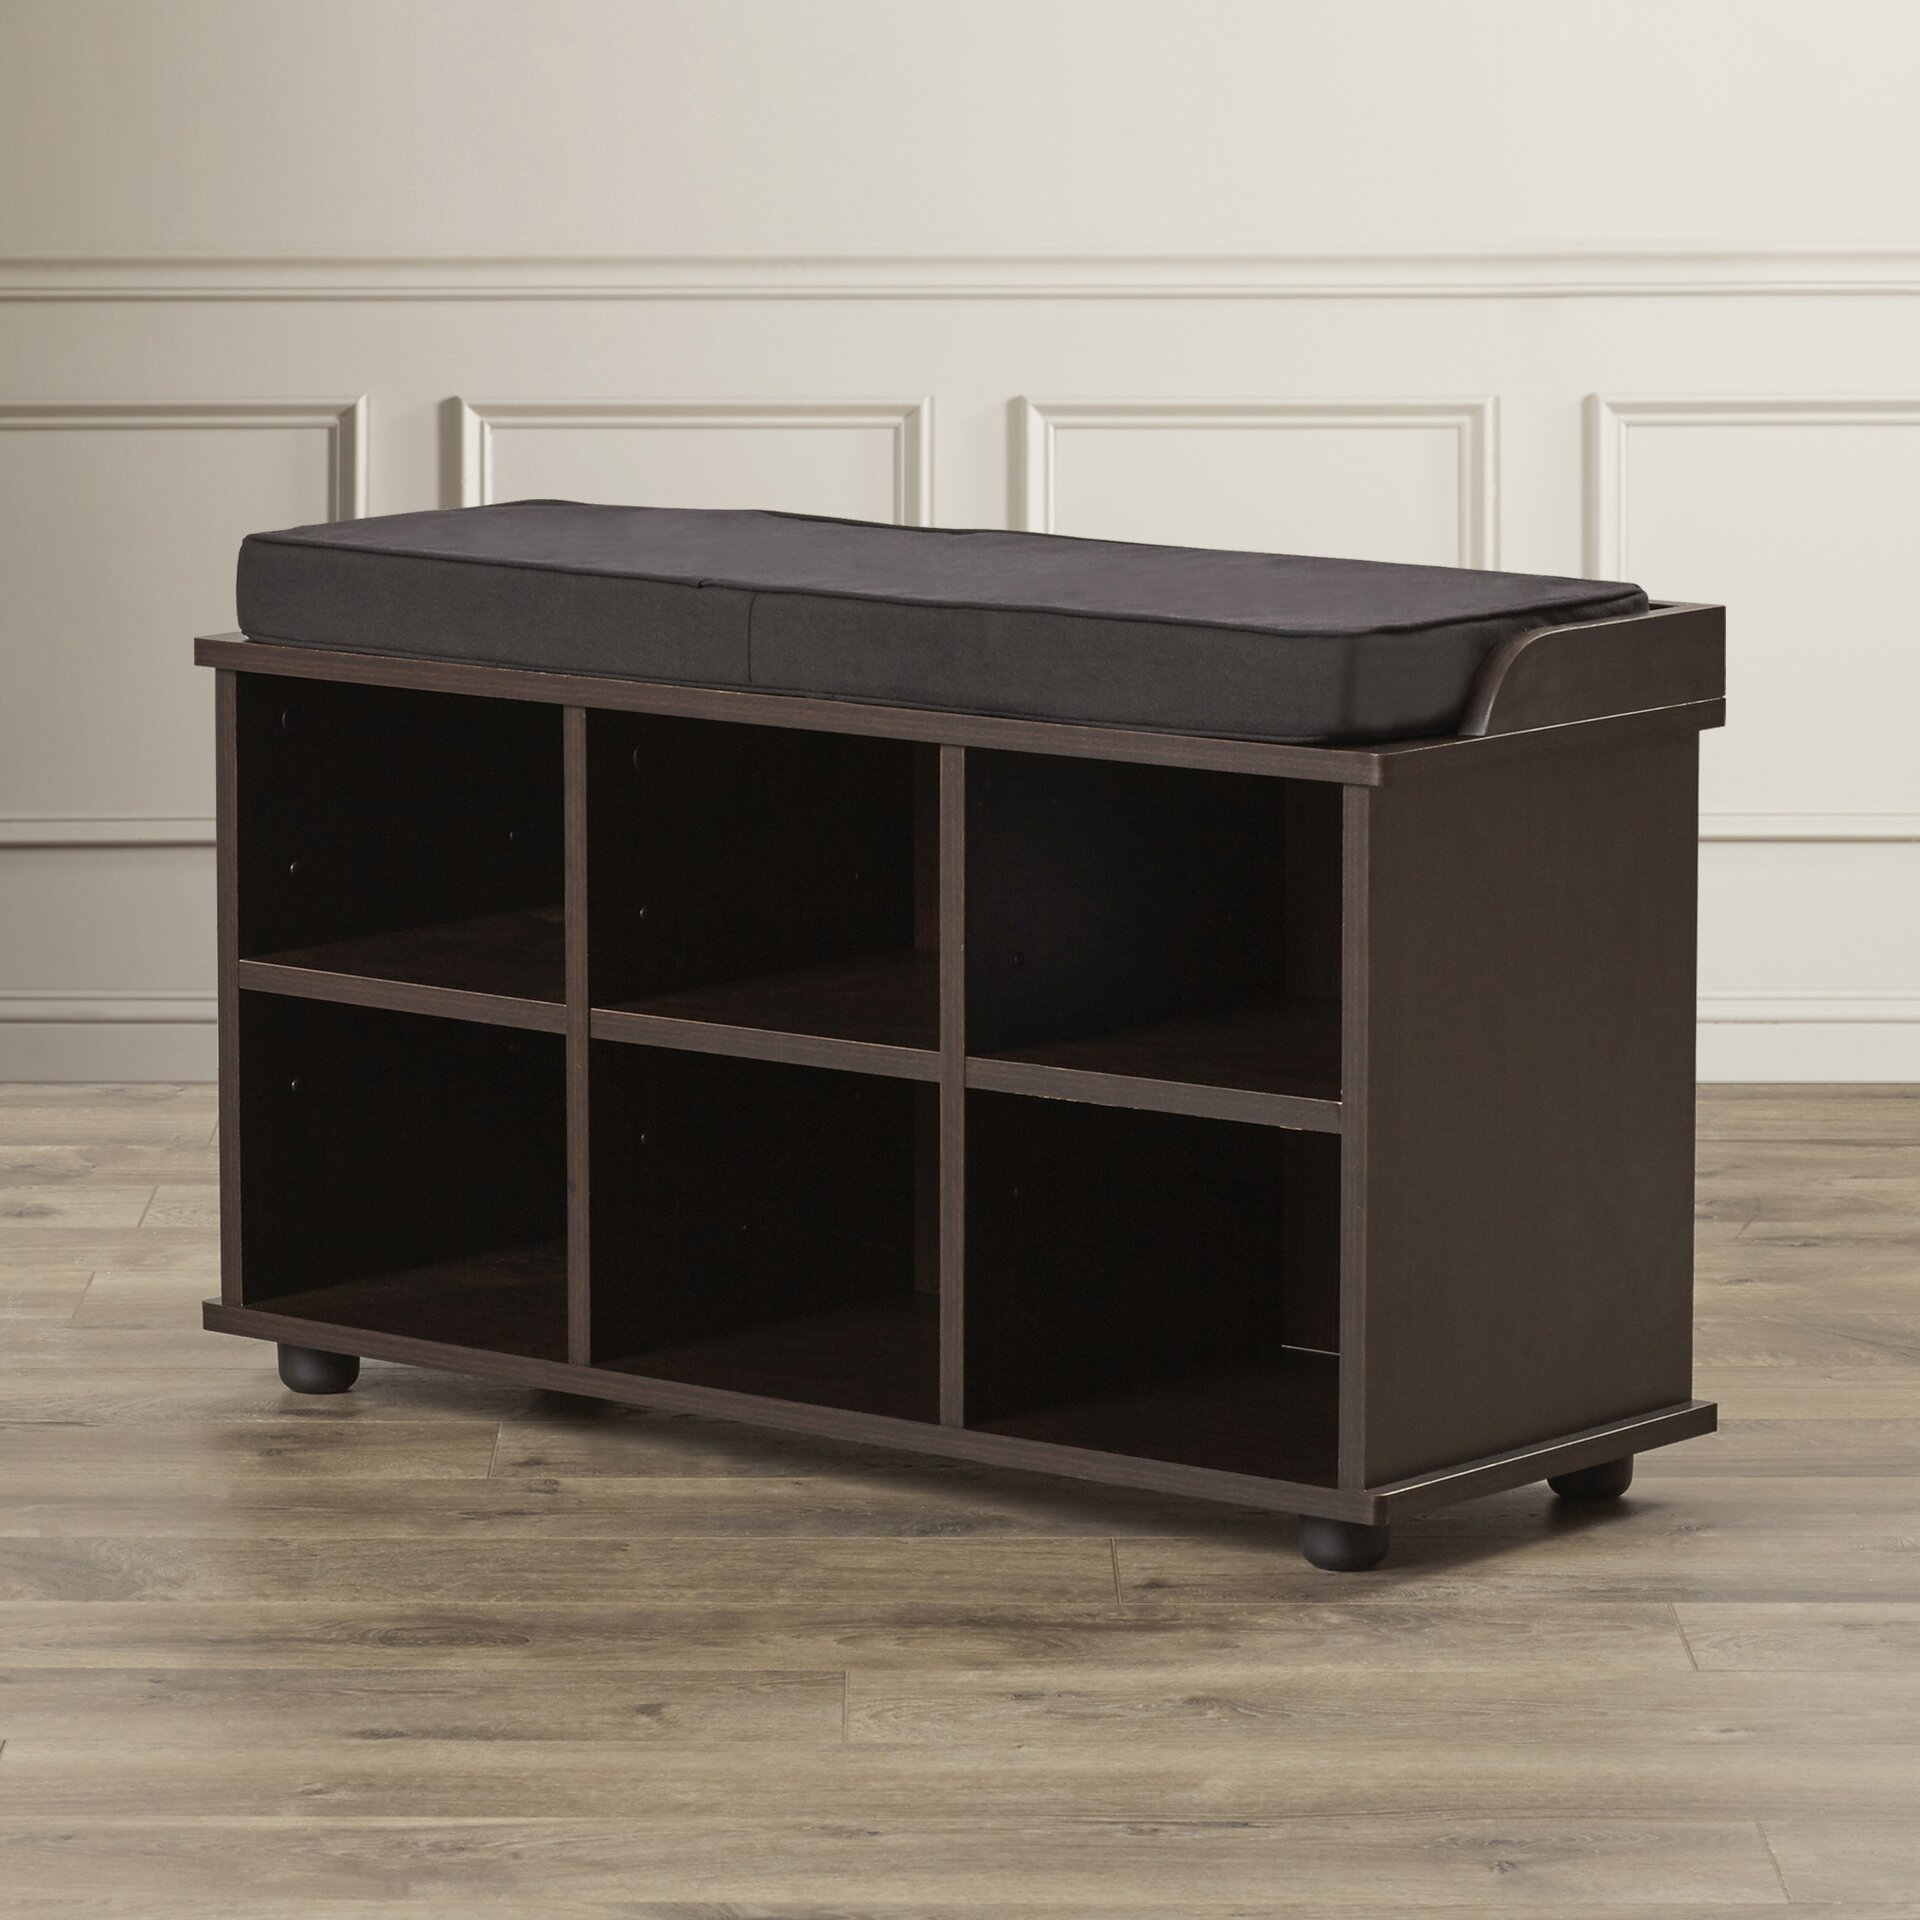 Charlton home 6 cubby storage entryway bench reviews for Storage charlton